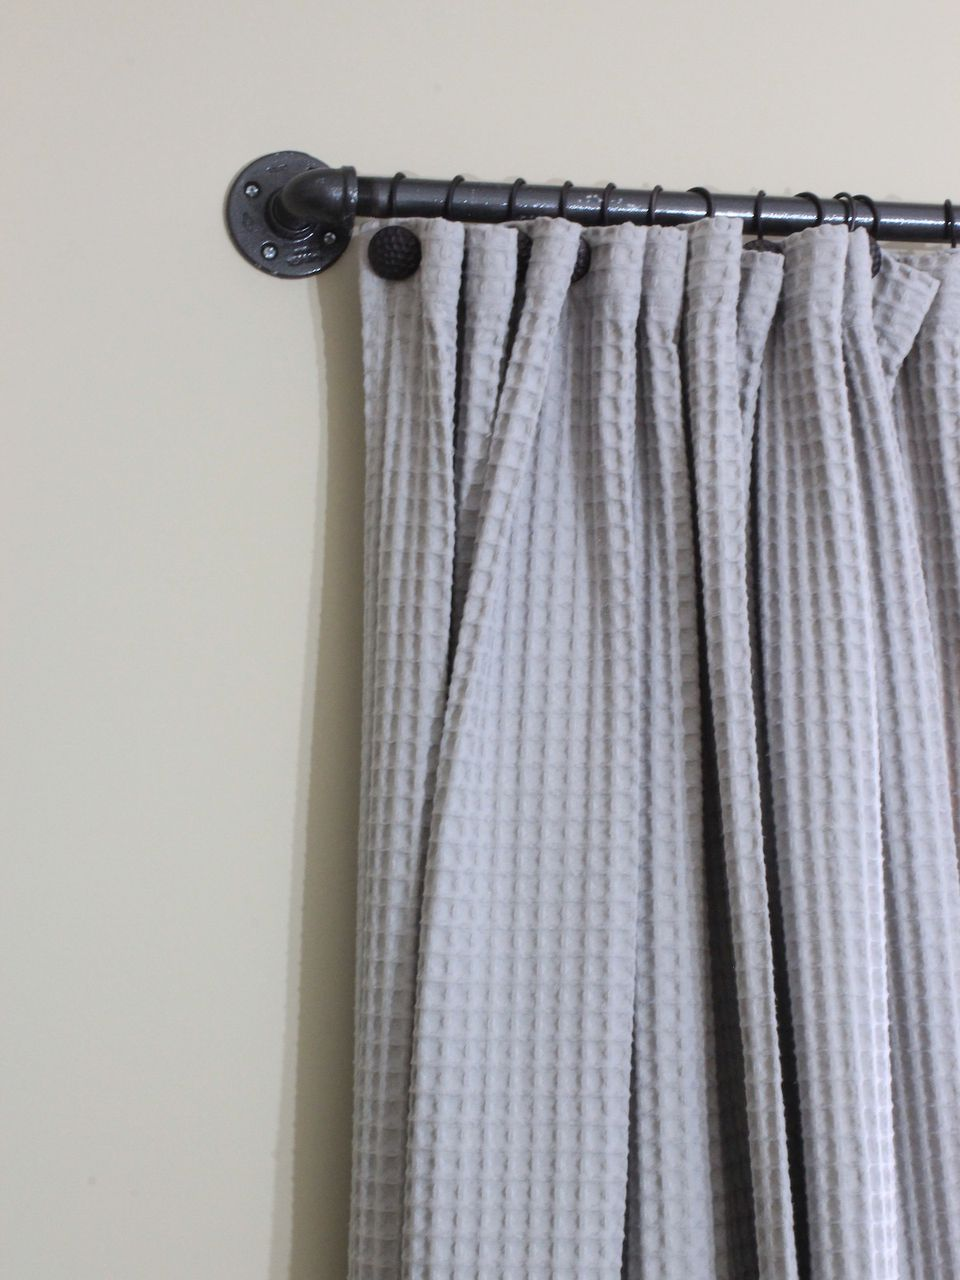 6 ways to make your own curtain rods for Paper curtains diy